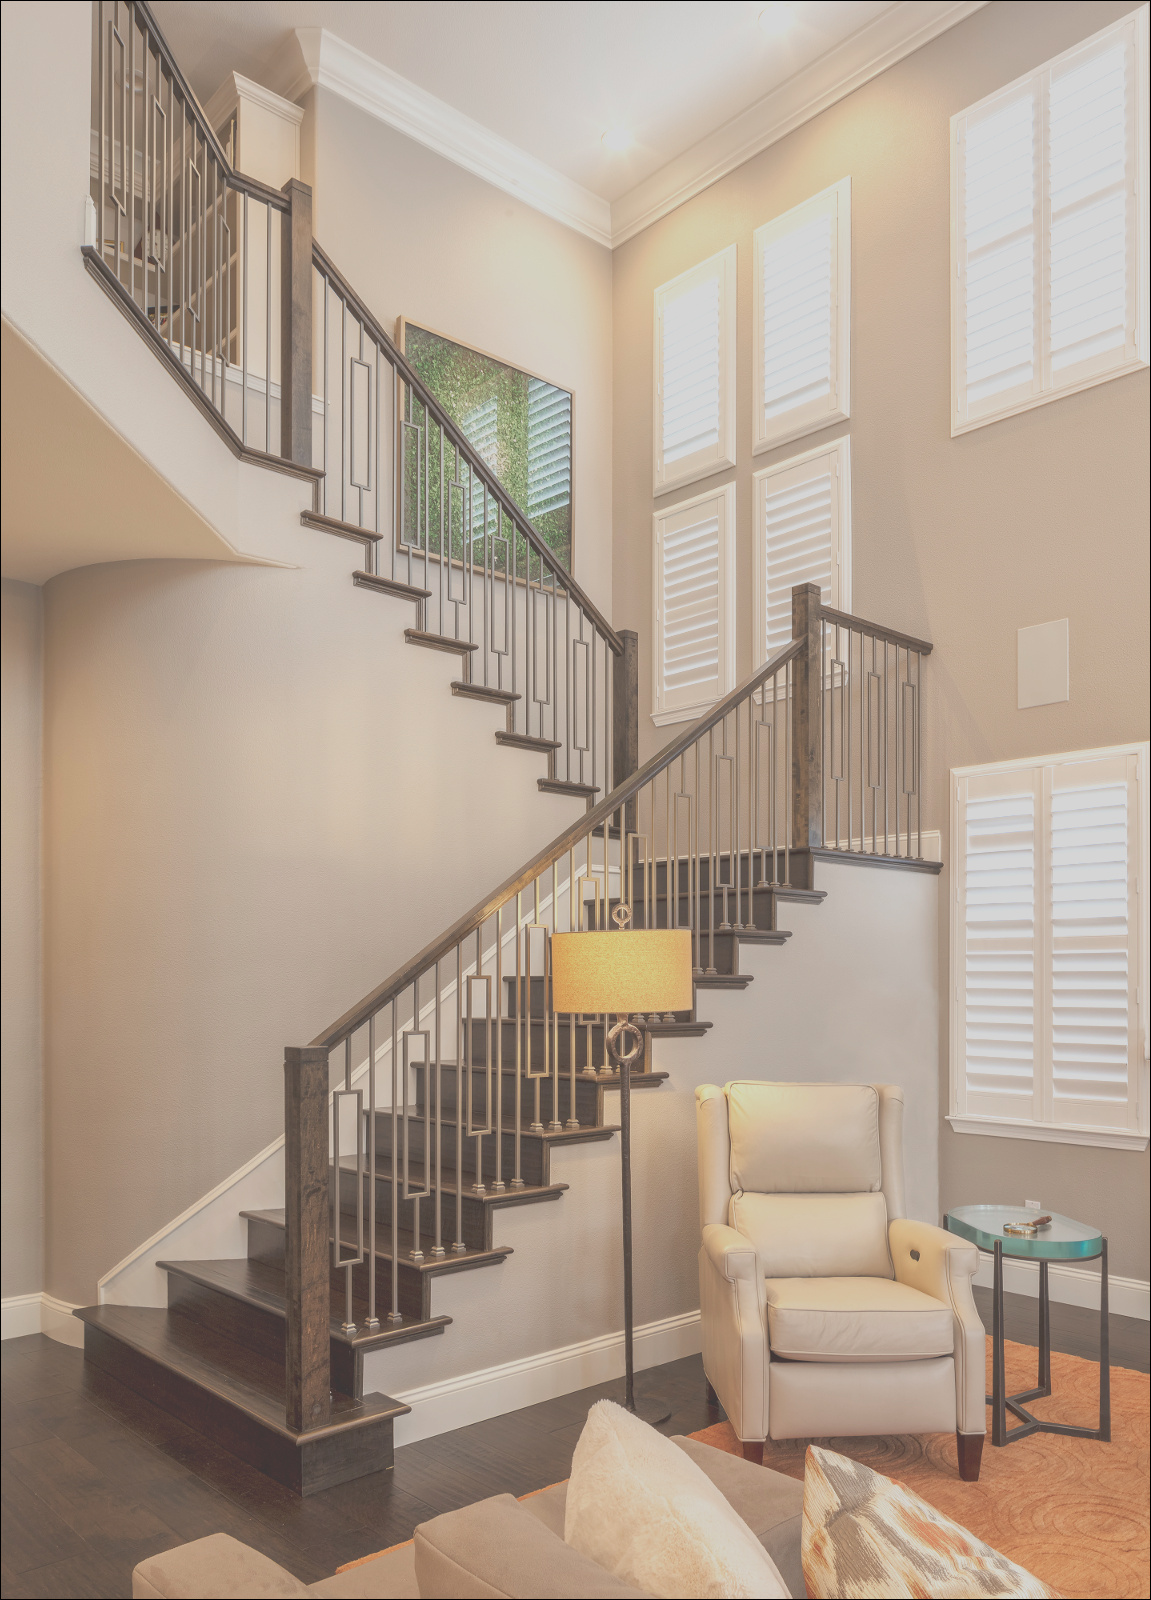 new takes on staircases and railings